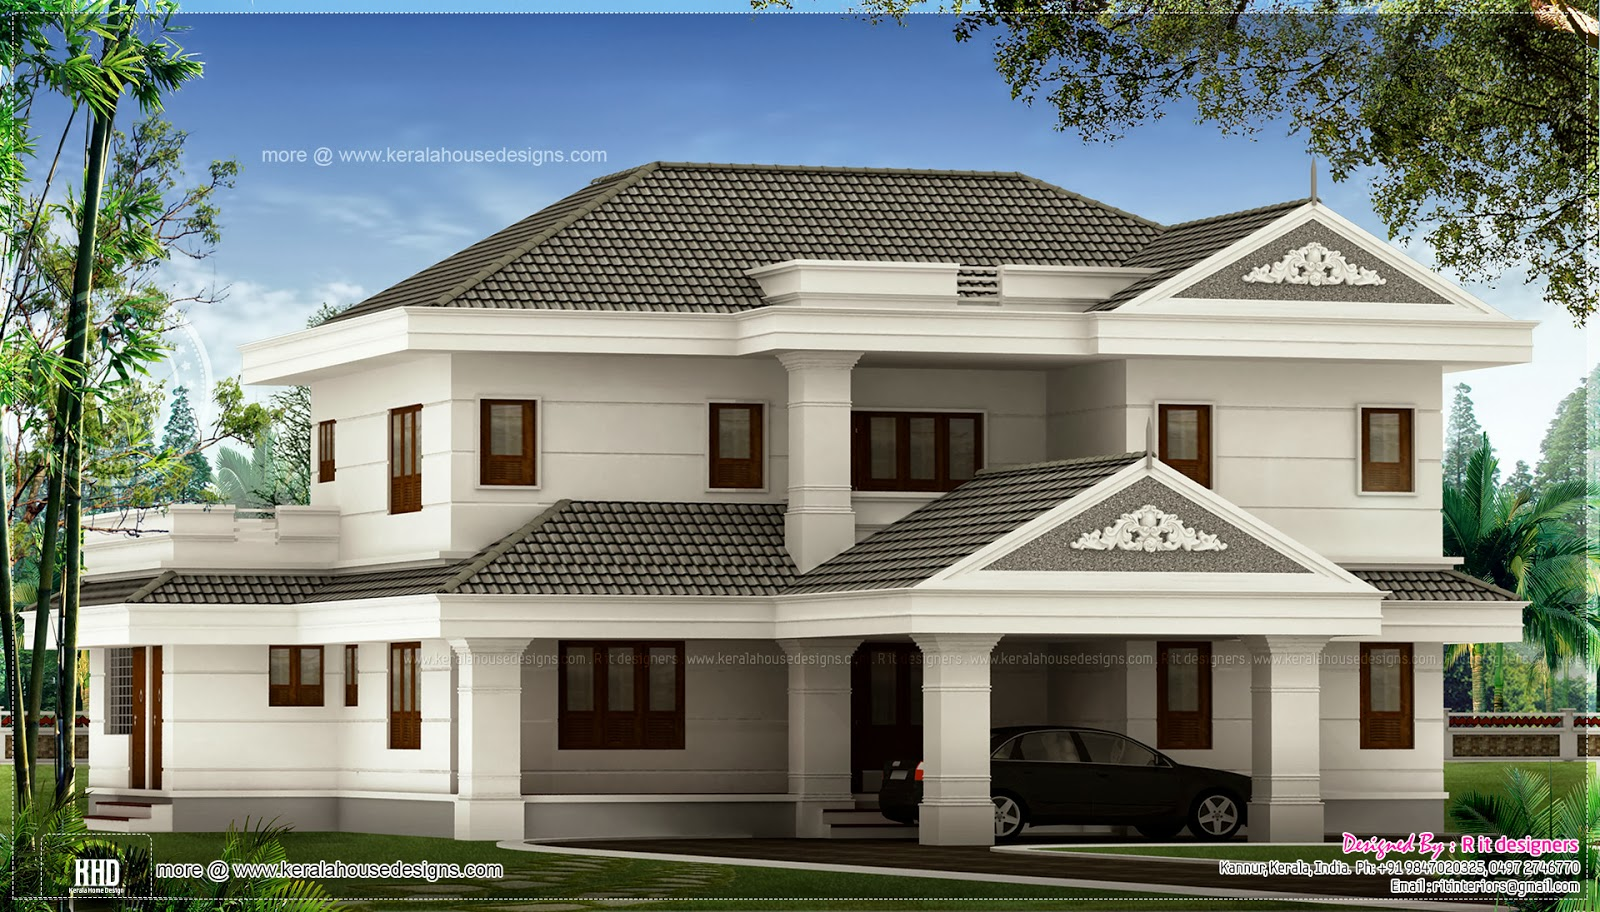 100 low budget house plans in kerala with price colors for House plans with estimated cost to build in kerala